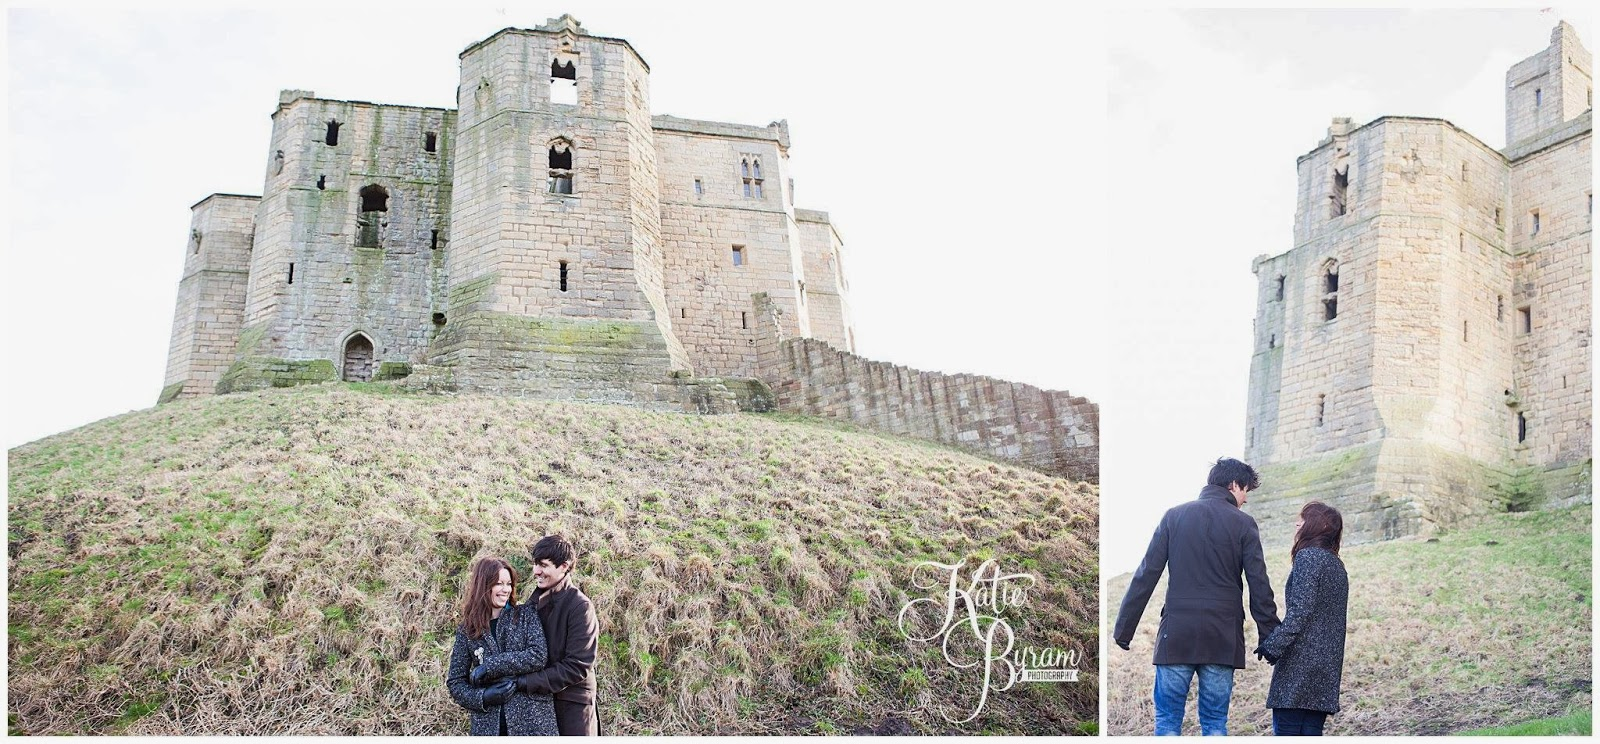 kinder egg engagement, kinder surprise, kinder surprise engagement, warkworth pre-wedding shoot, warkworth, northumberland wedding photographer, northumberland beach, warkworth beach, engagement photos northumberland, katie byram photography, warkworth engagement, warkworth castle, warkworth wedding,